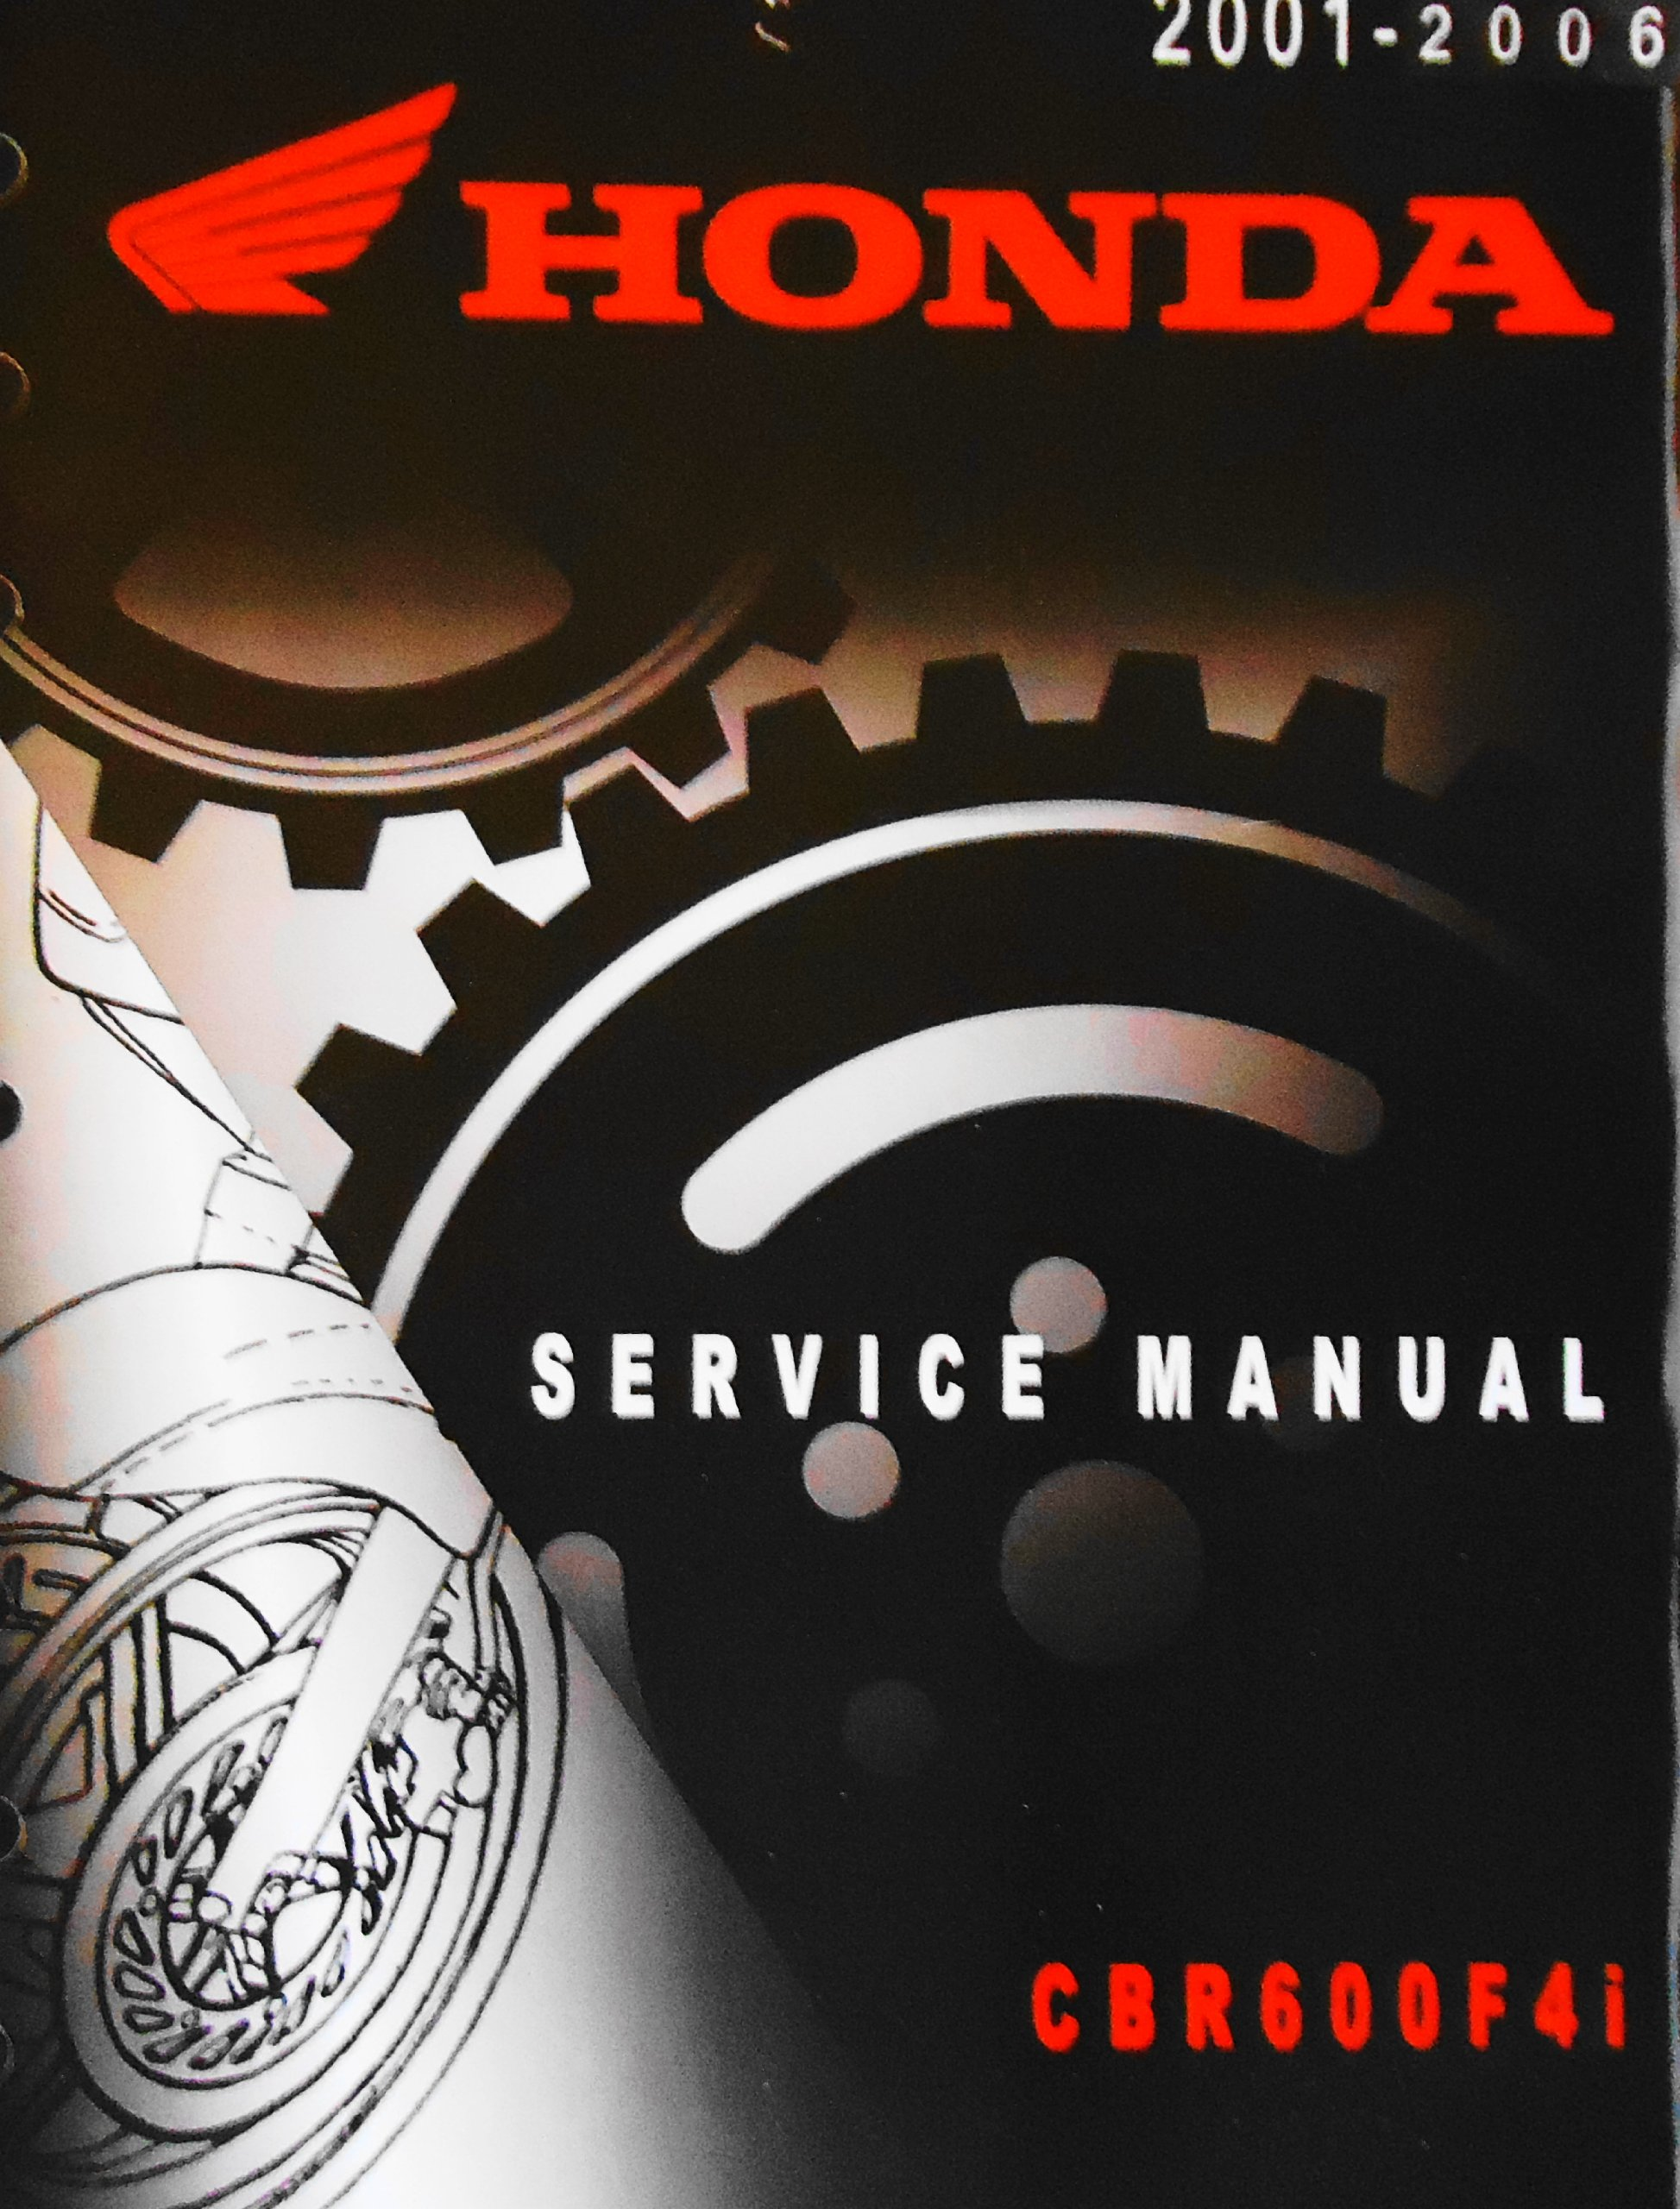 Official Honda Cbr600f4i Motorcycle Factory Service Manual 2001 2006 Cbr 600 F4i Motor Co Books